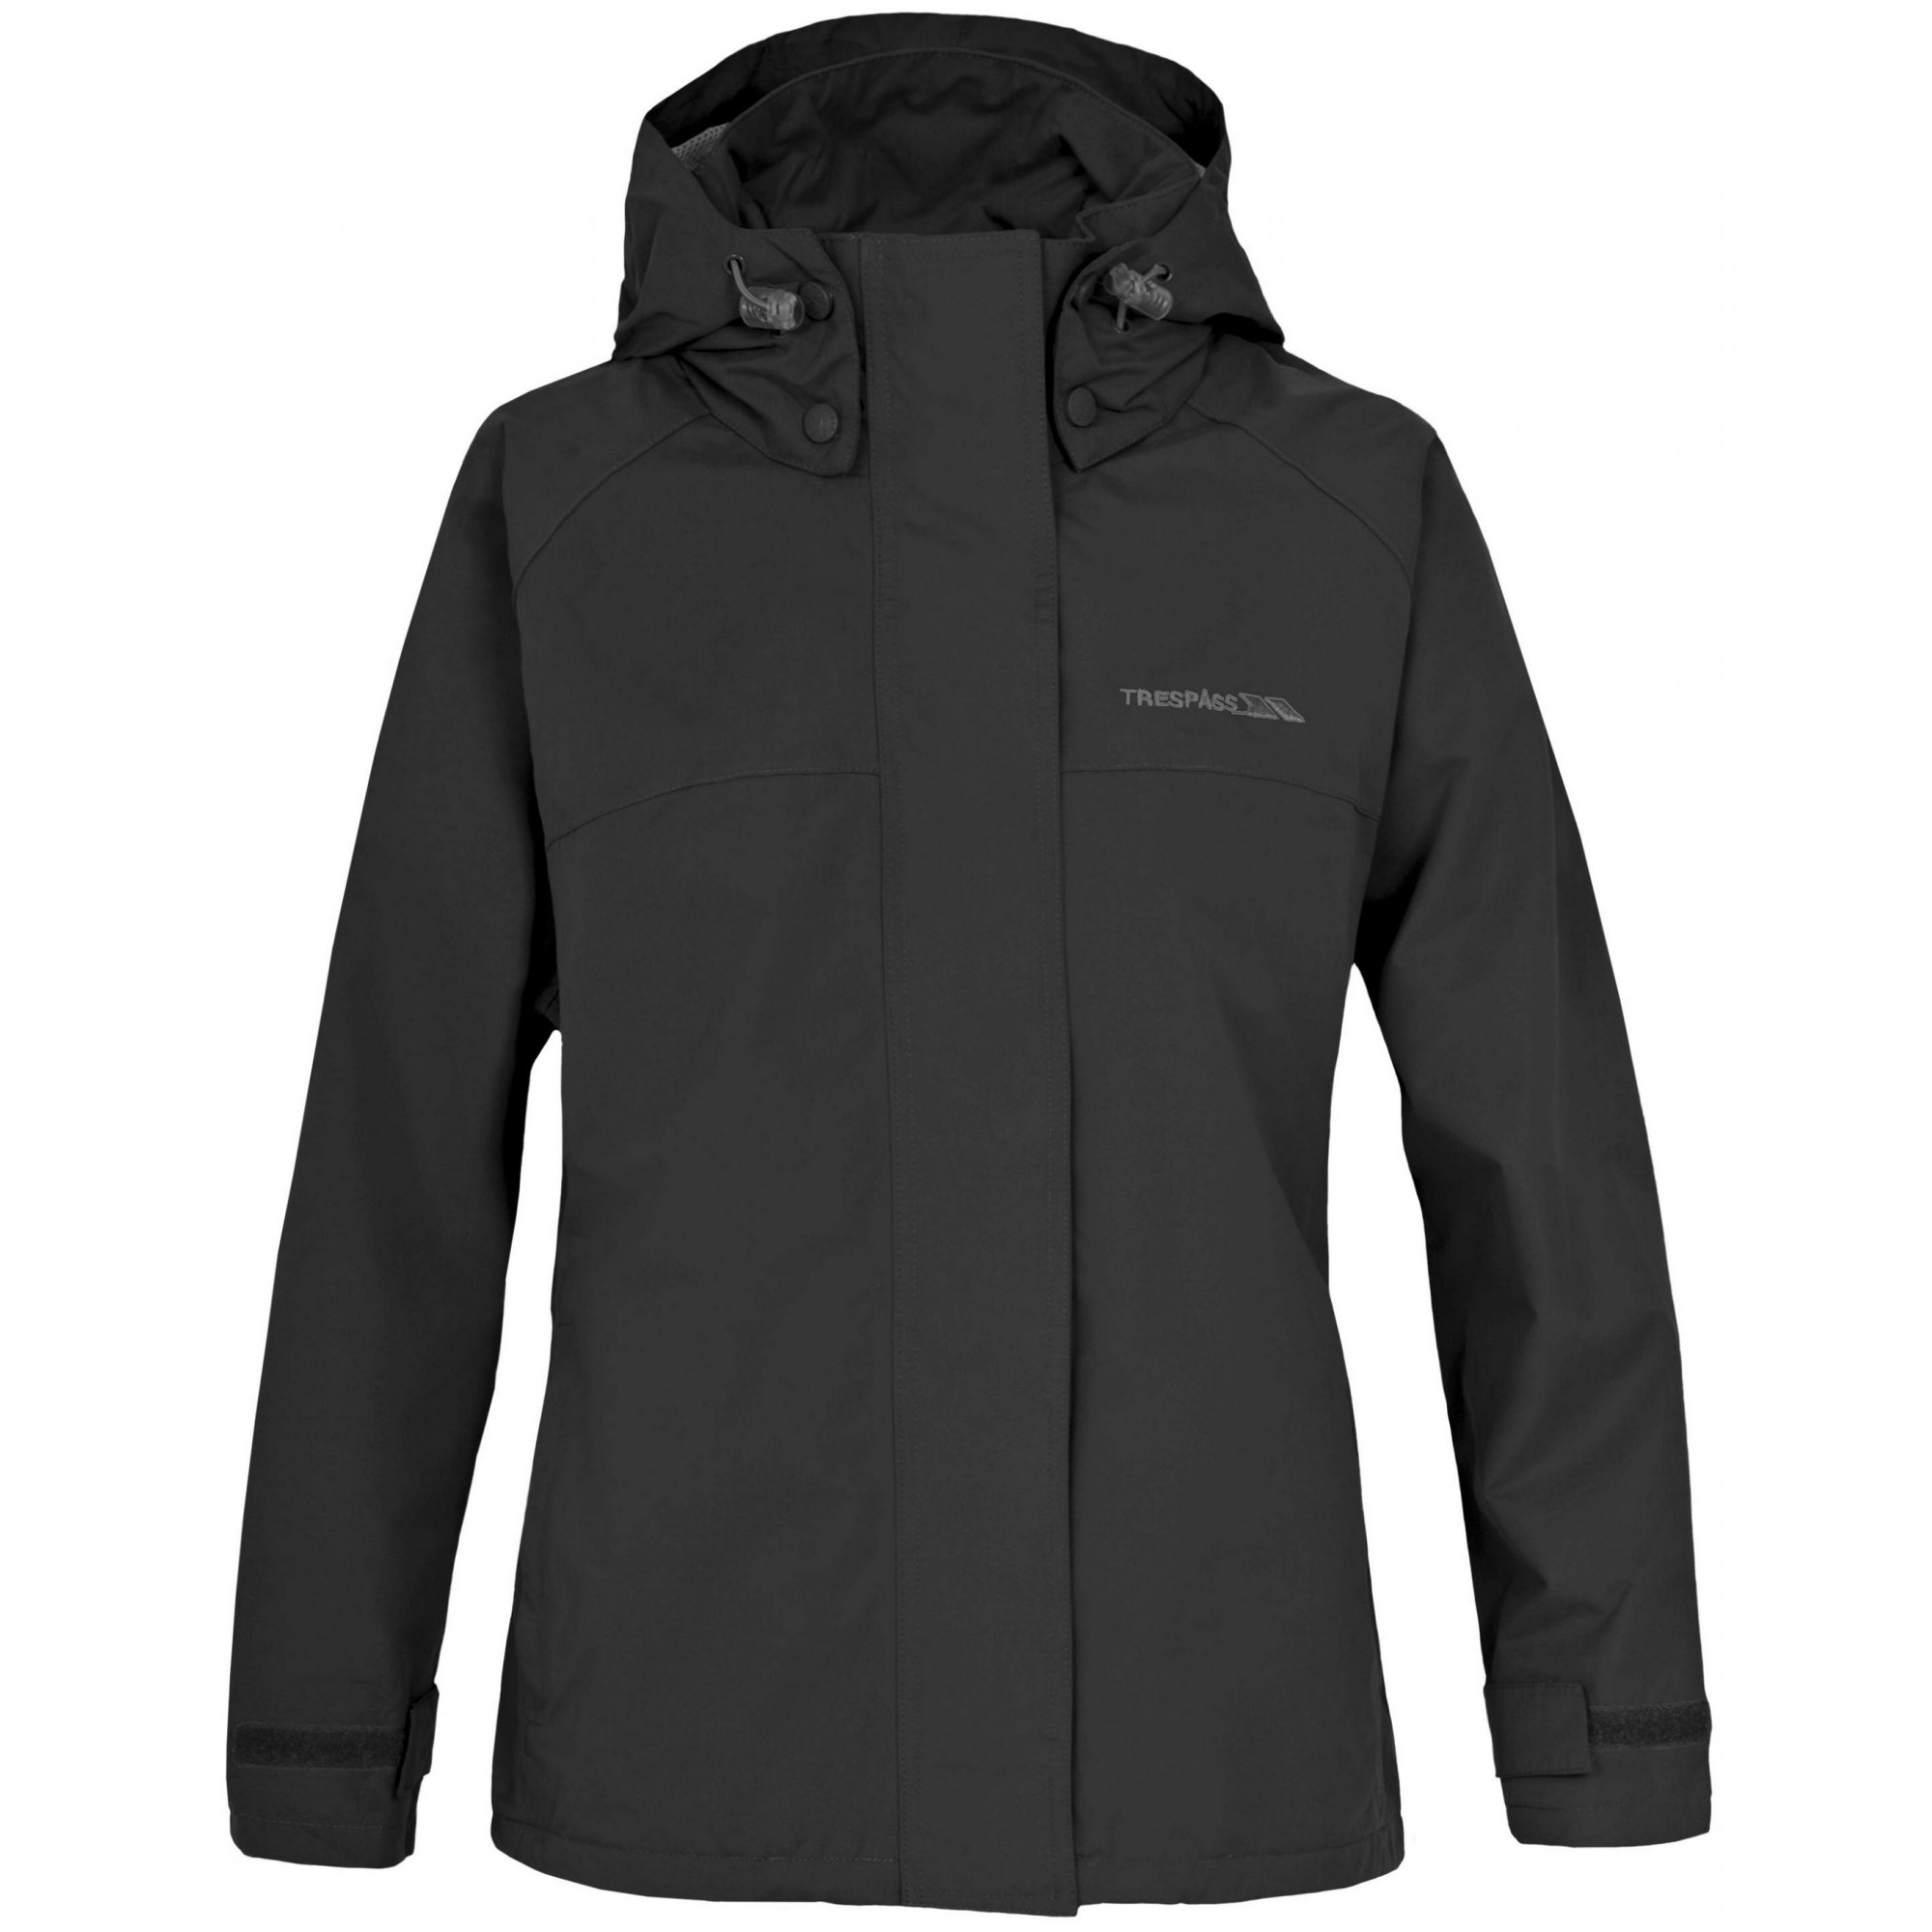 Trespass Womens/Ladies Hemisphere Waterproof Jacket 6 ...